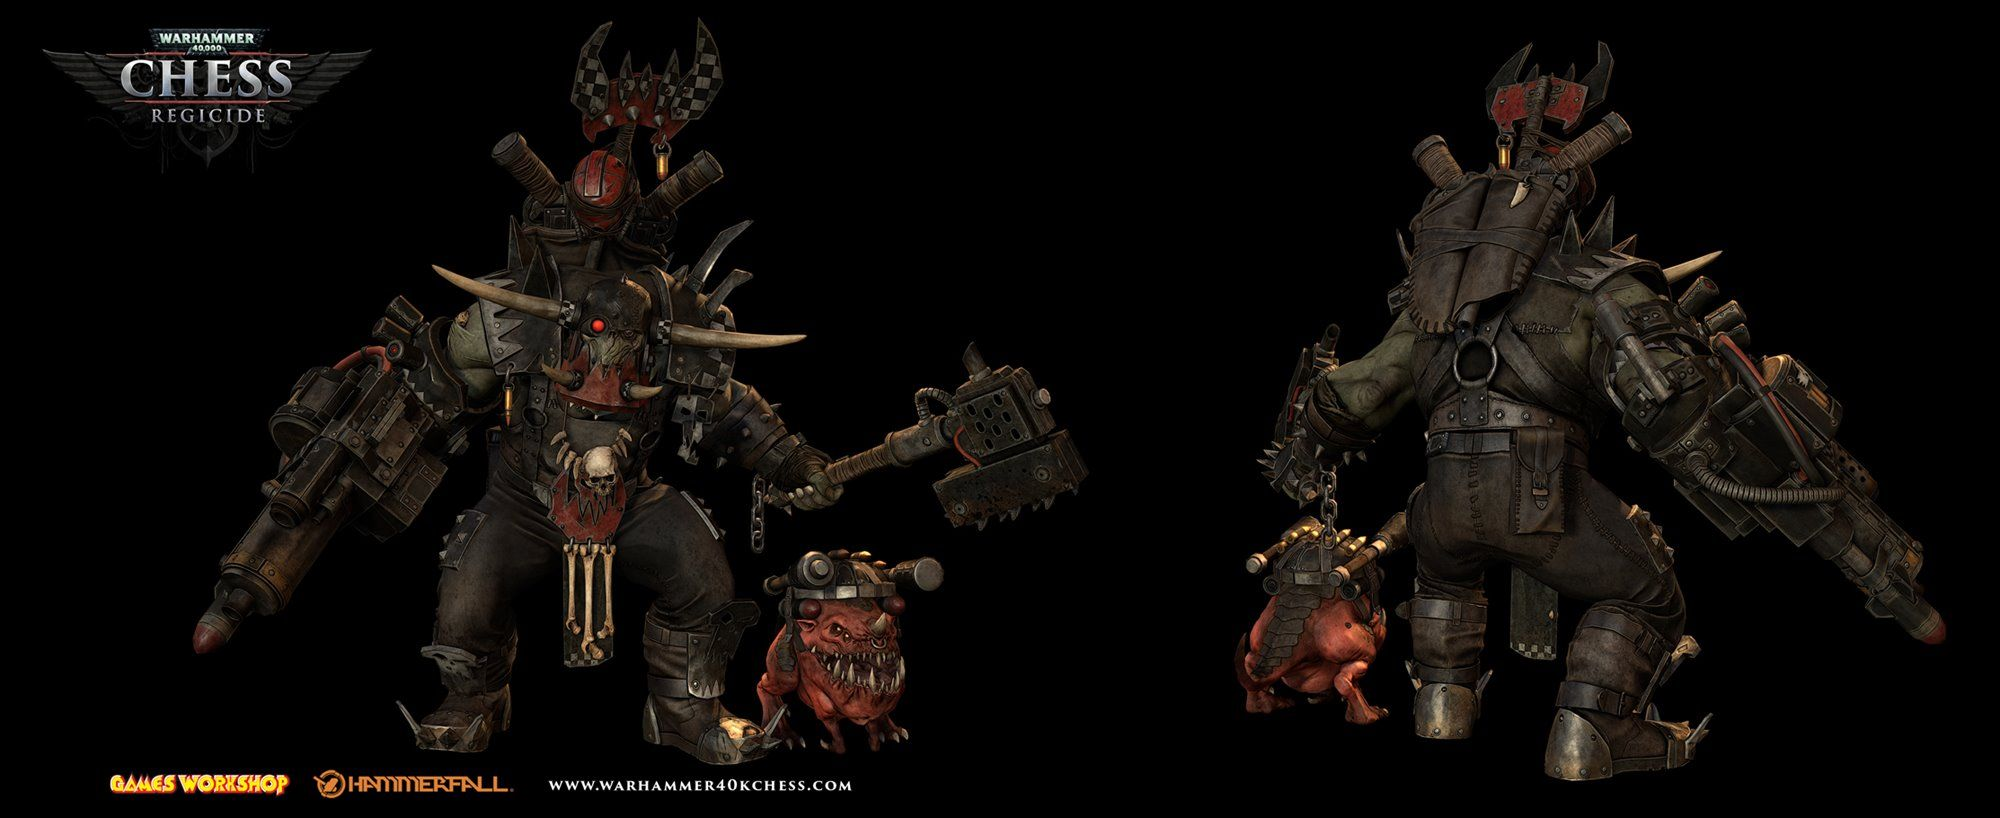 axe orks regicide(game) squig warboss